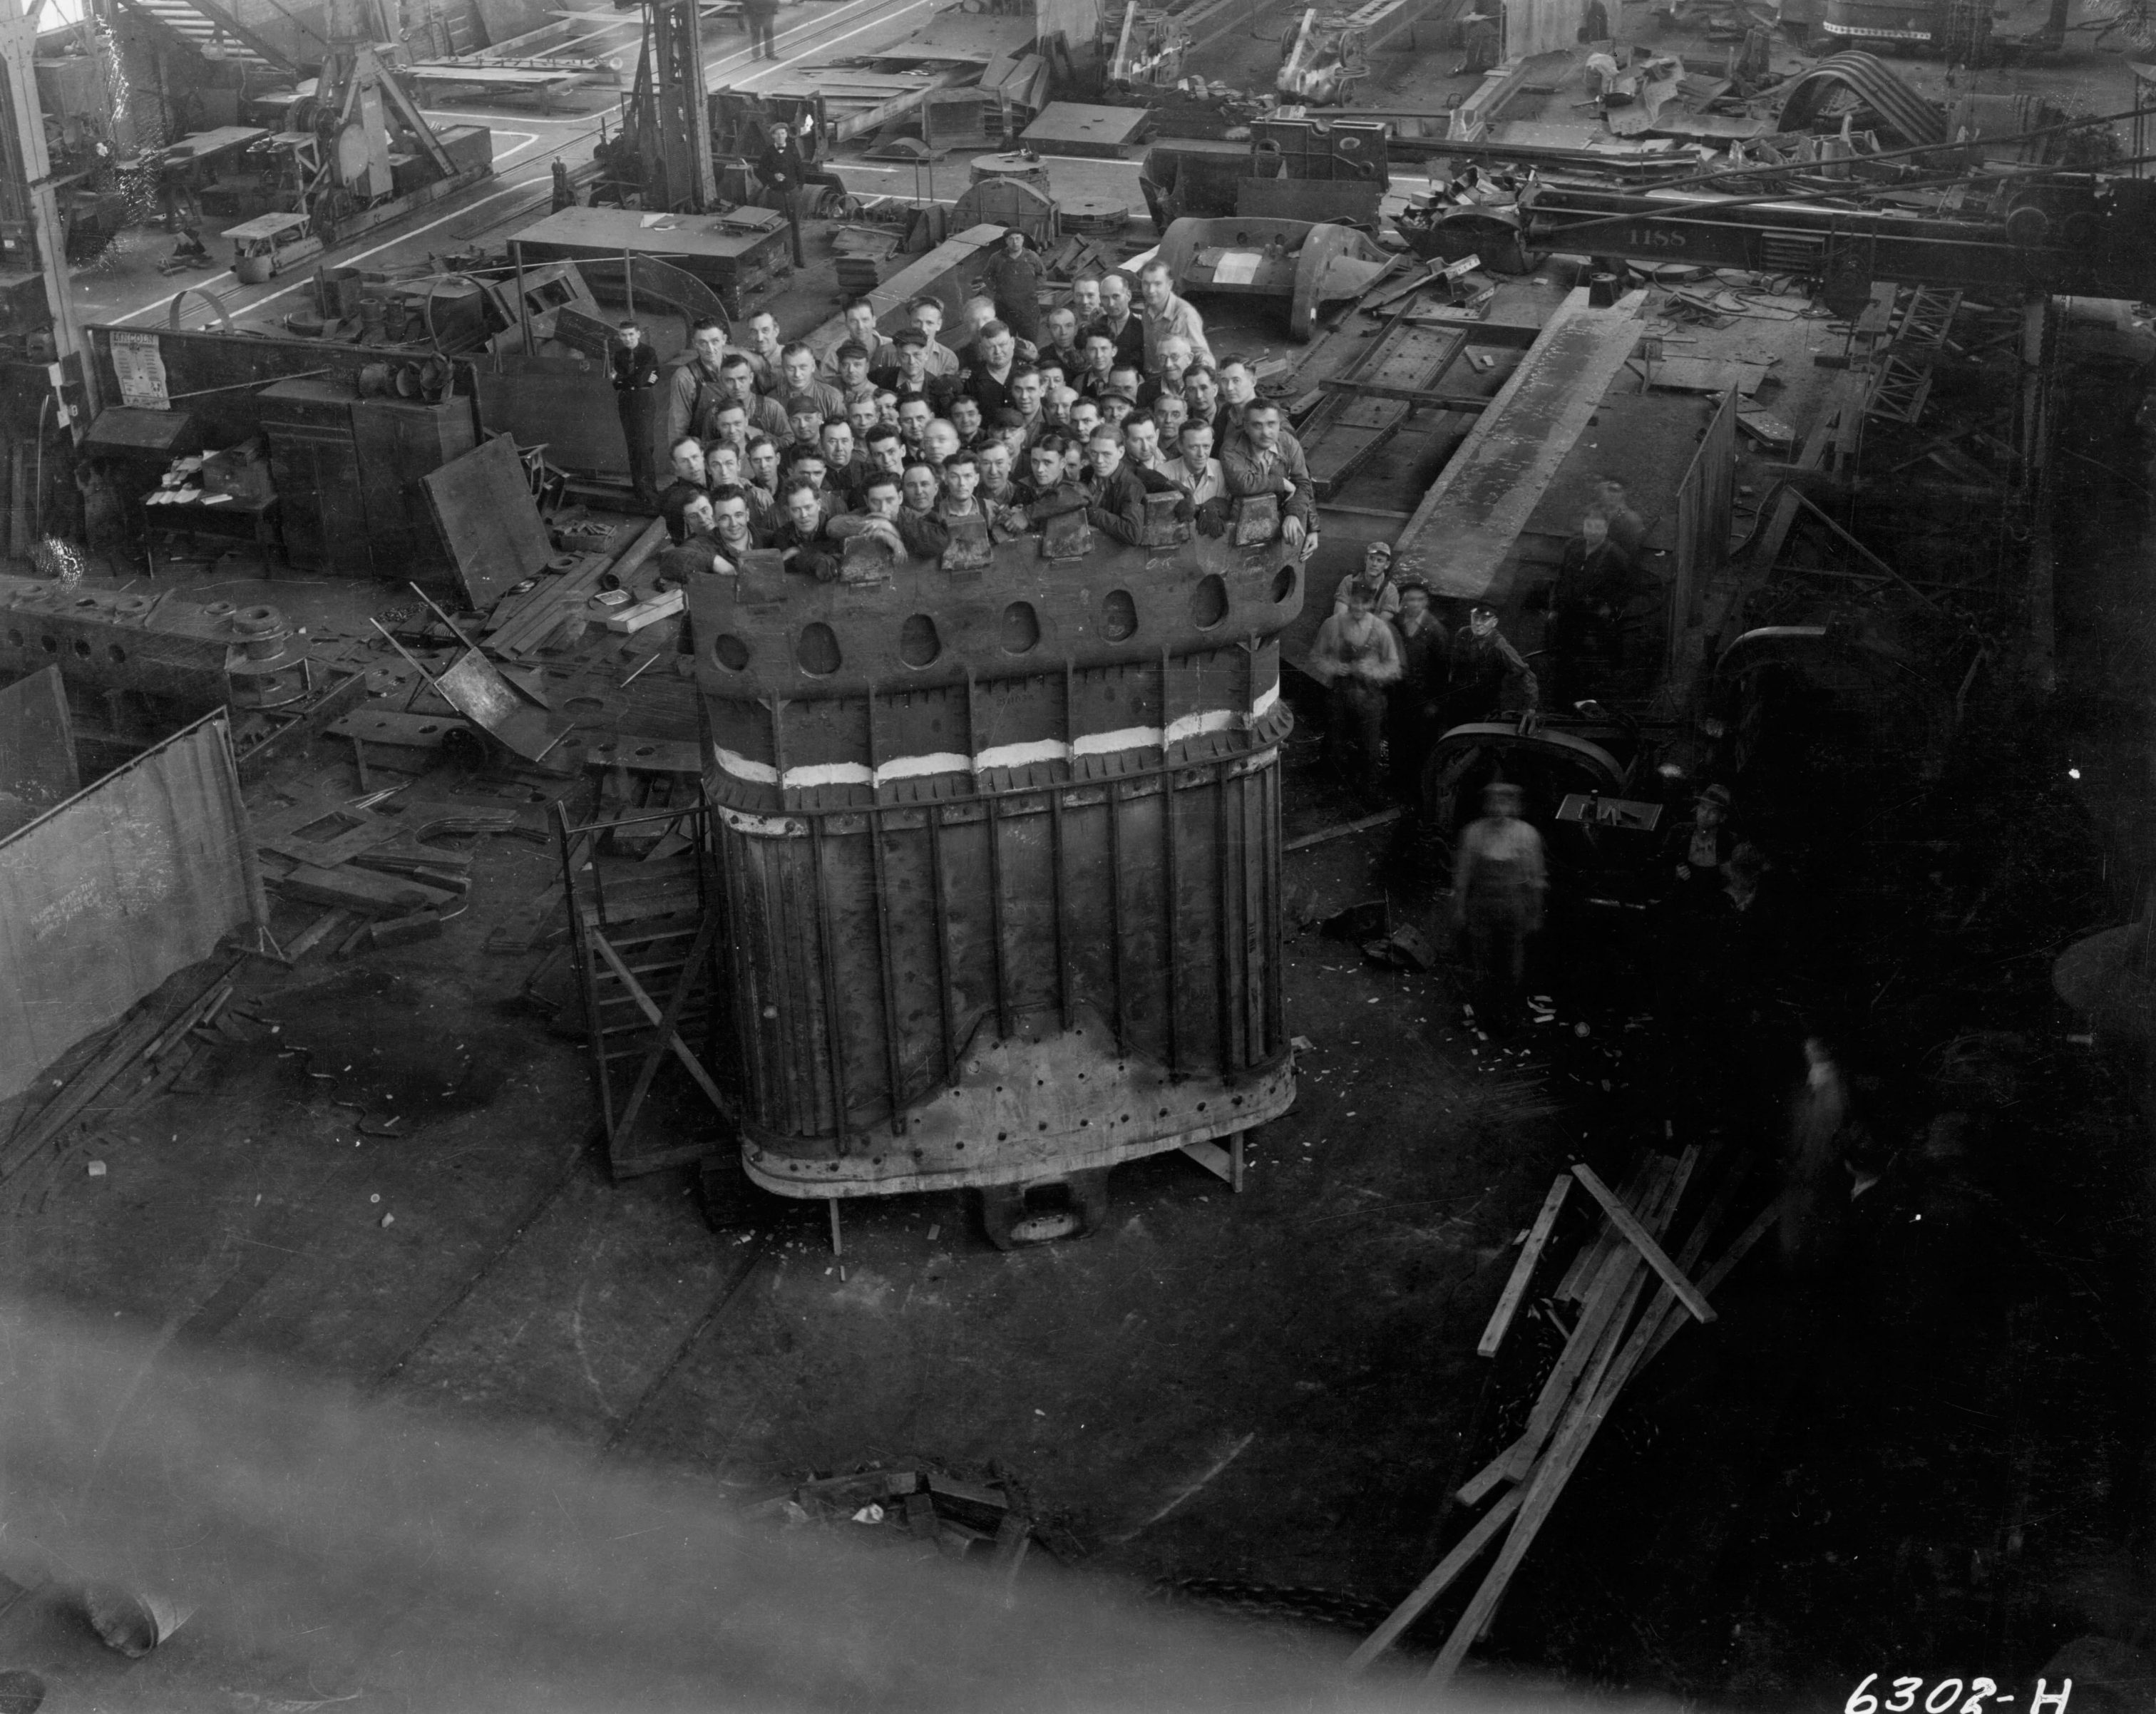 52 men stand inside a massive dipper for a 950B stripping shovel manufactured at the Bucyrus-Erie plant in South Milwaukee.